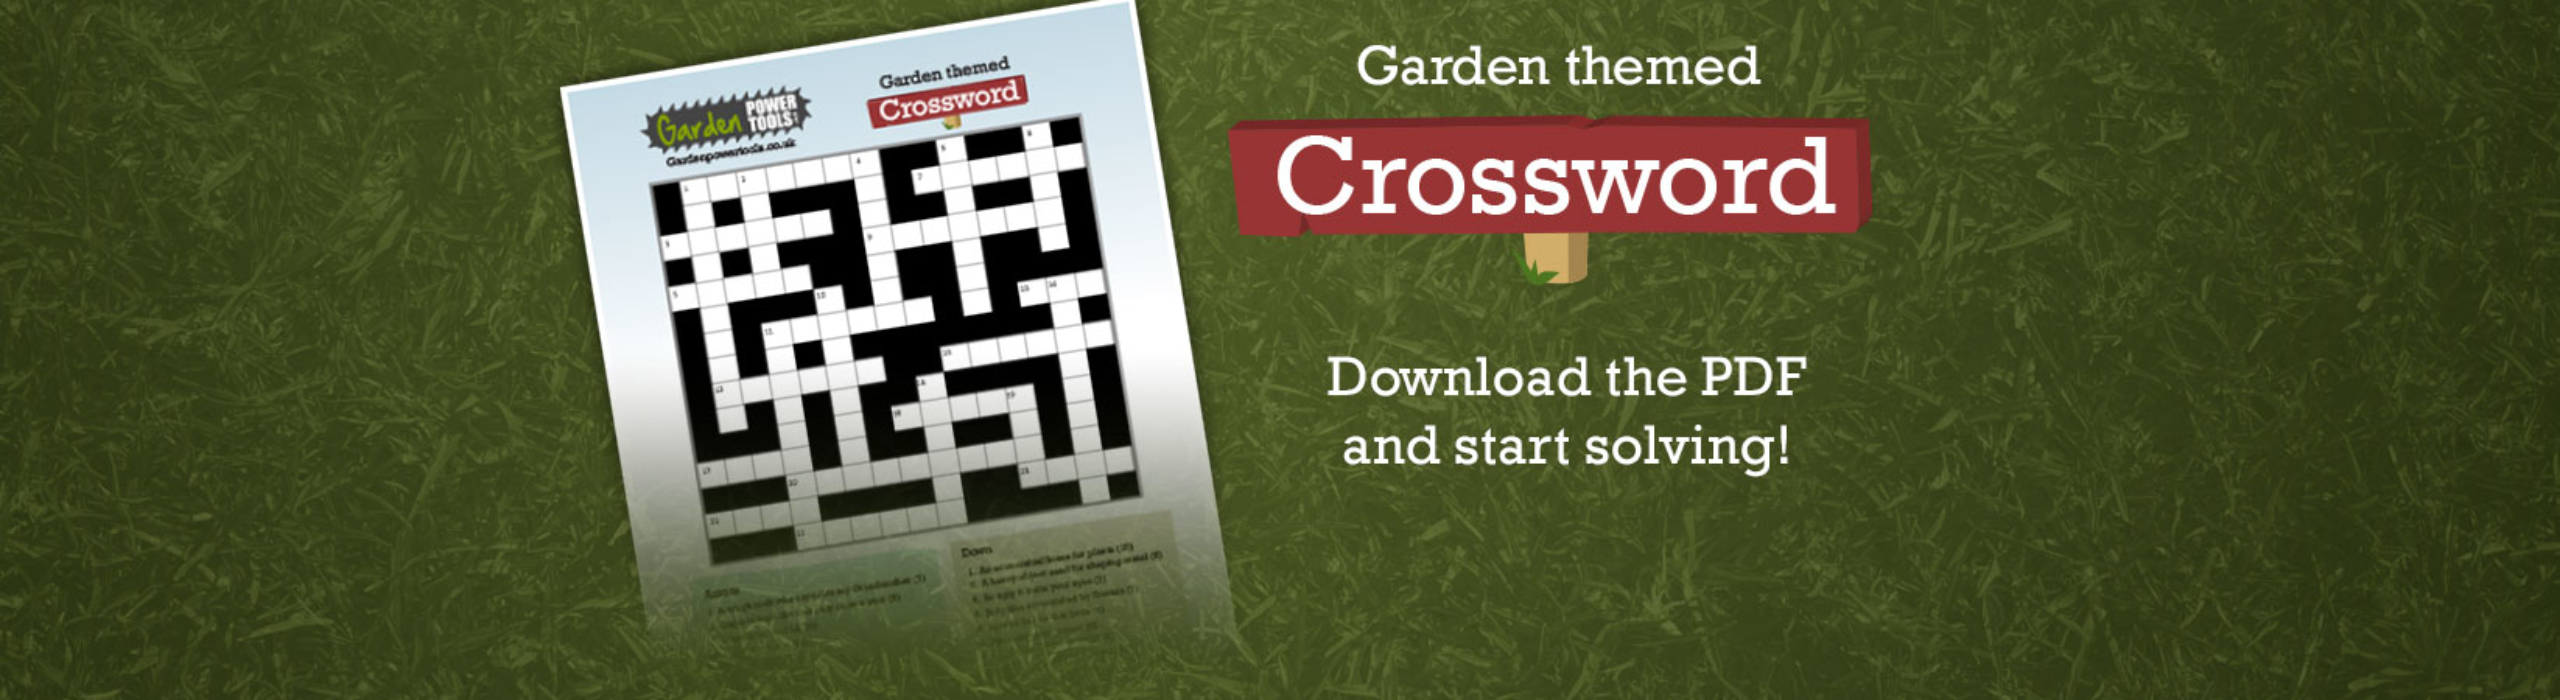 Garden Themed Crossword